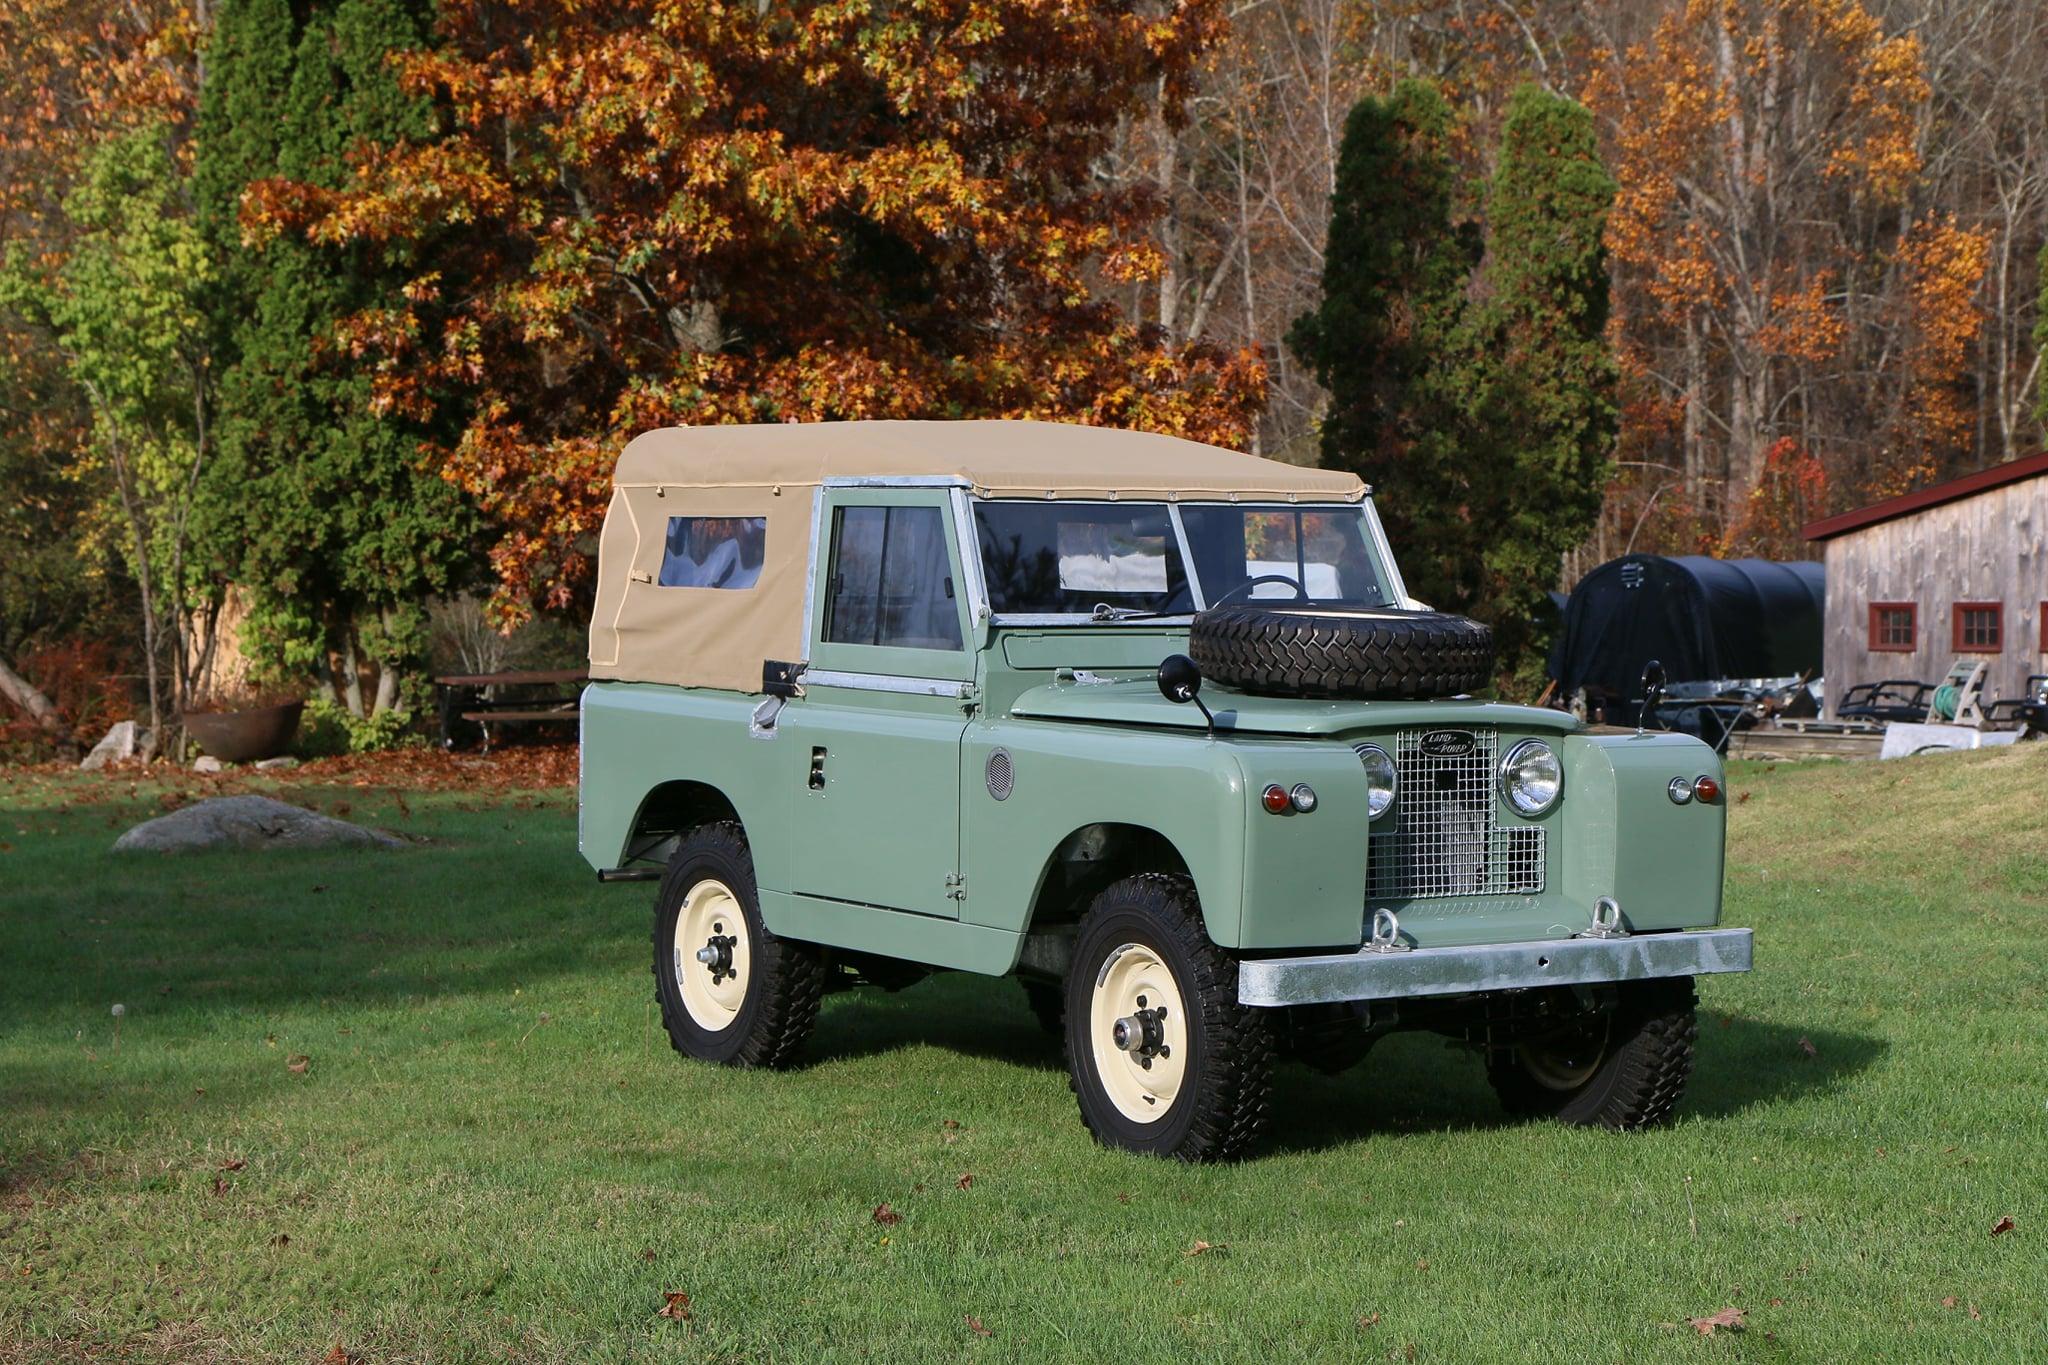 1965 Land Rover Series IIA Pastel Green Photo 1